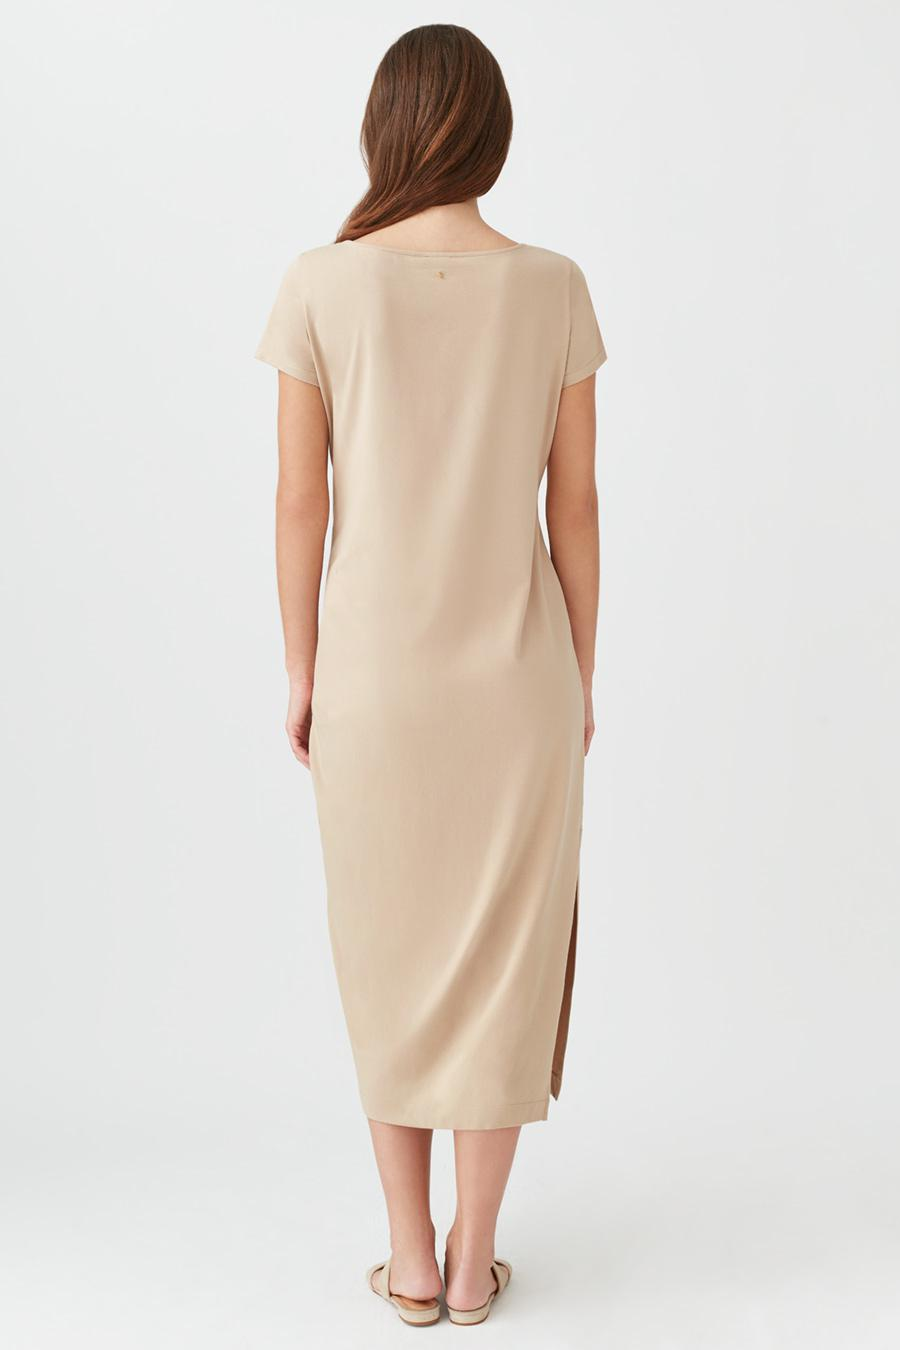 Women's Gathered Front Tee Dress in Dune | Size: Small | Pima Modal Spandex Blend by Cuyana 2